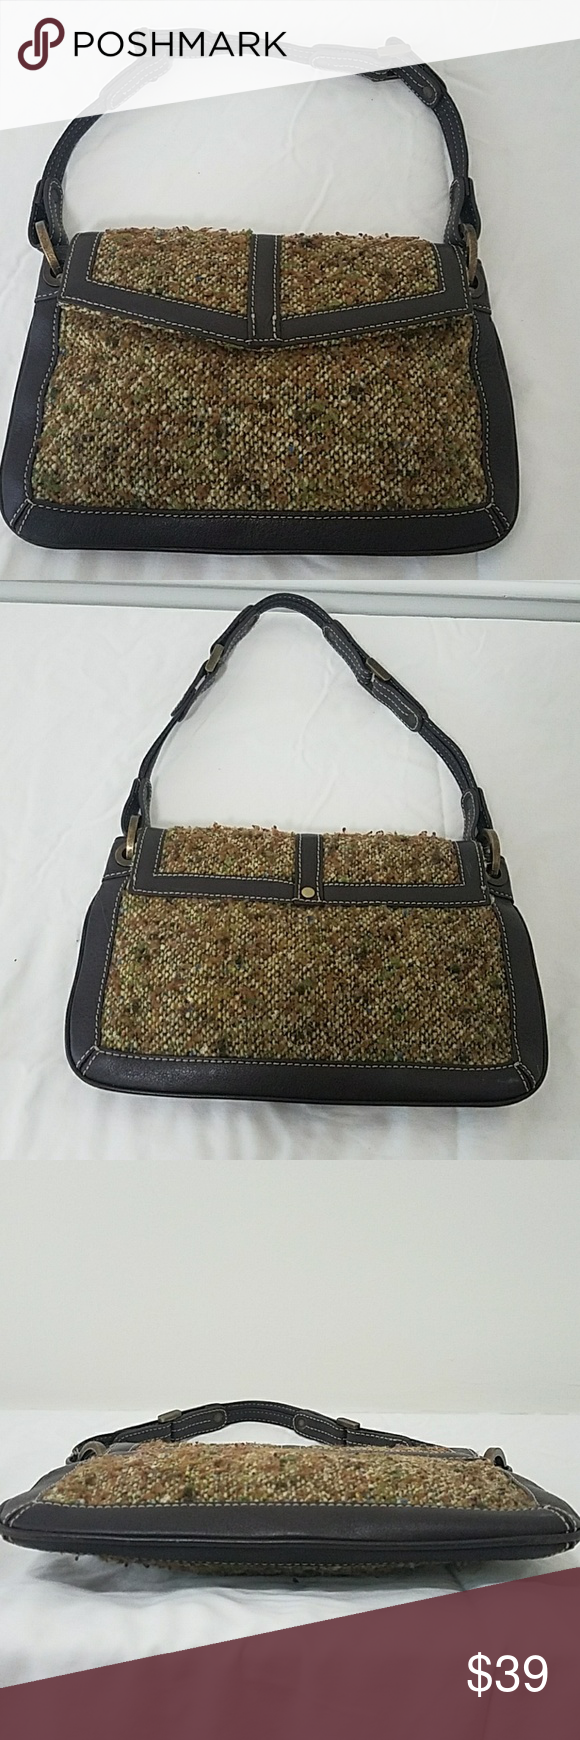 315b08d4e1 J CREW Tweed and Leather Demi bag Leather and Tweed bag by J CREW. Magnetuc